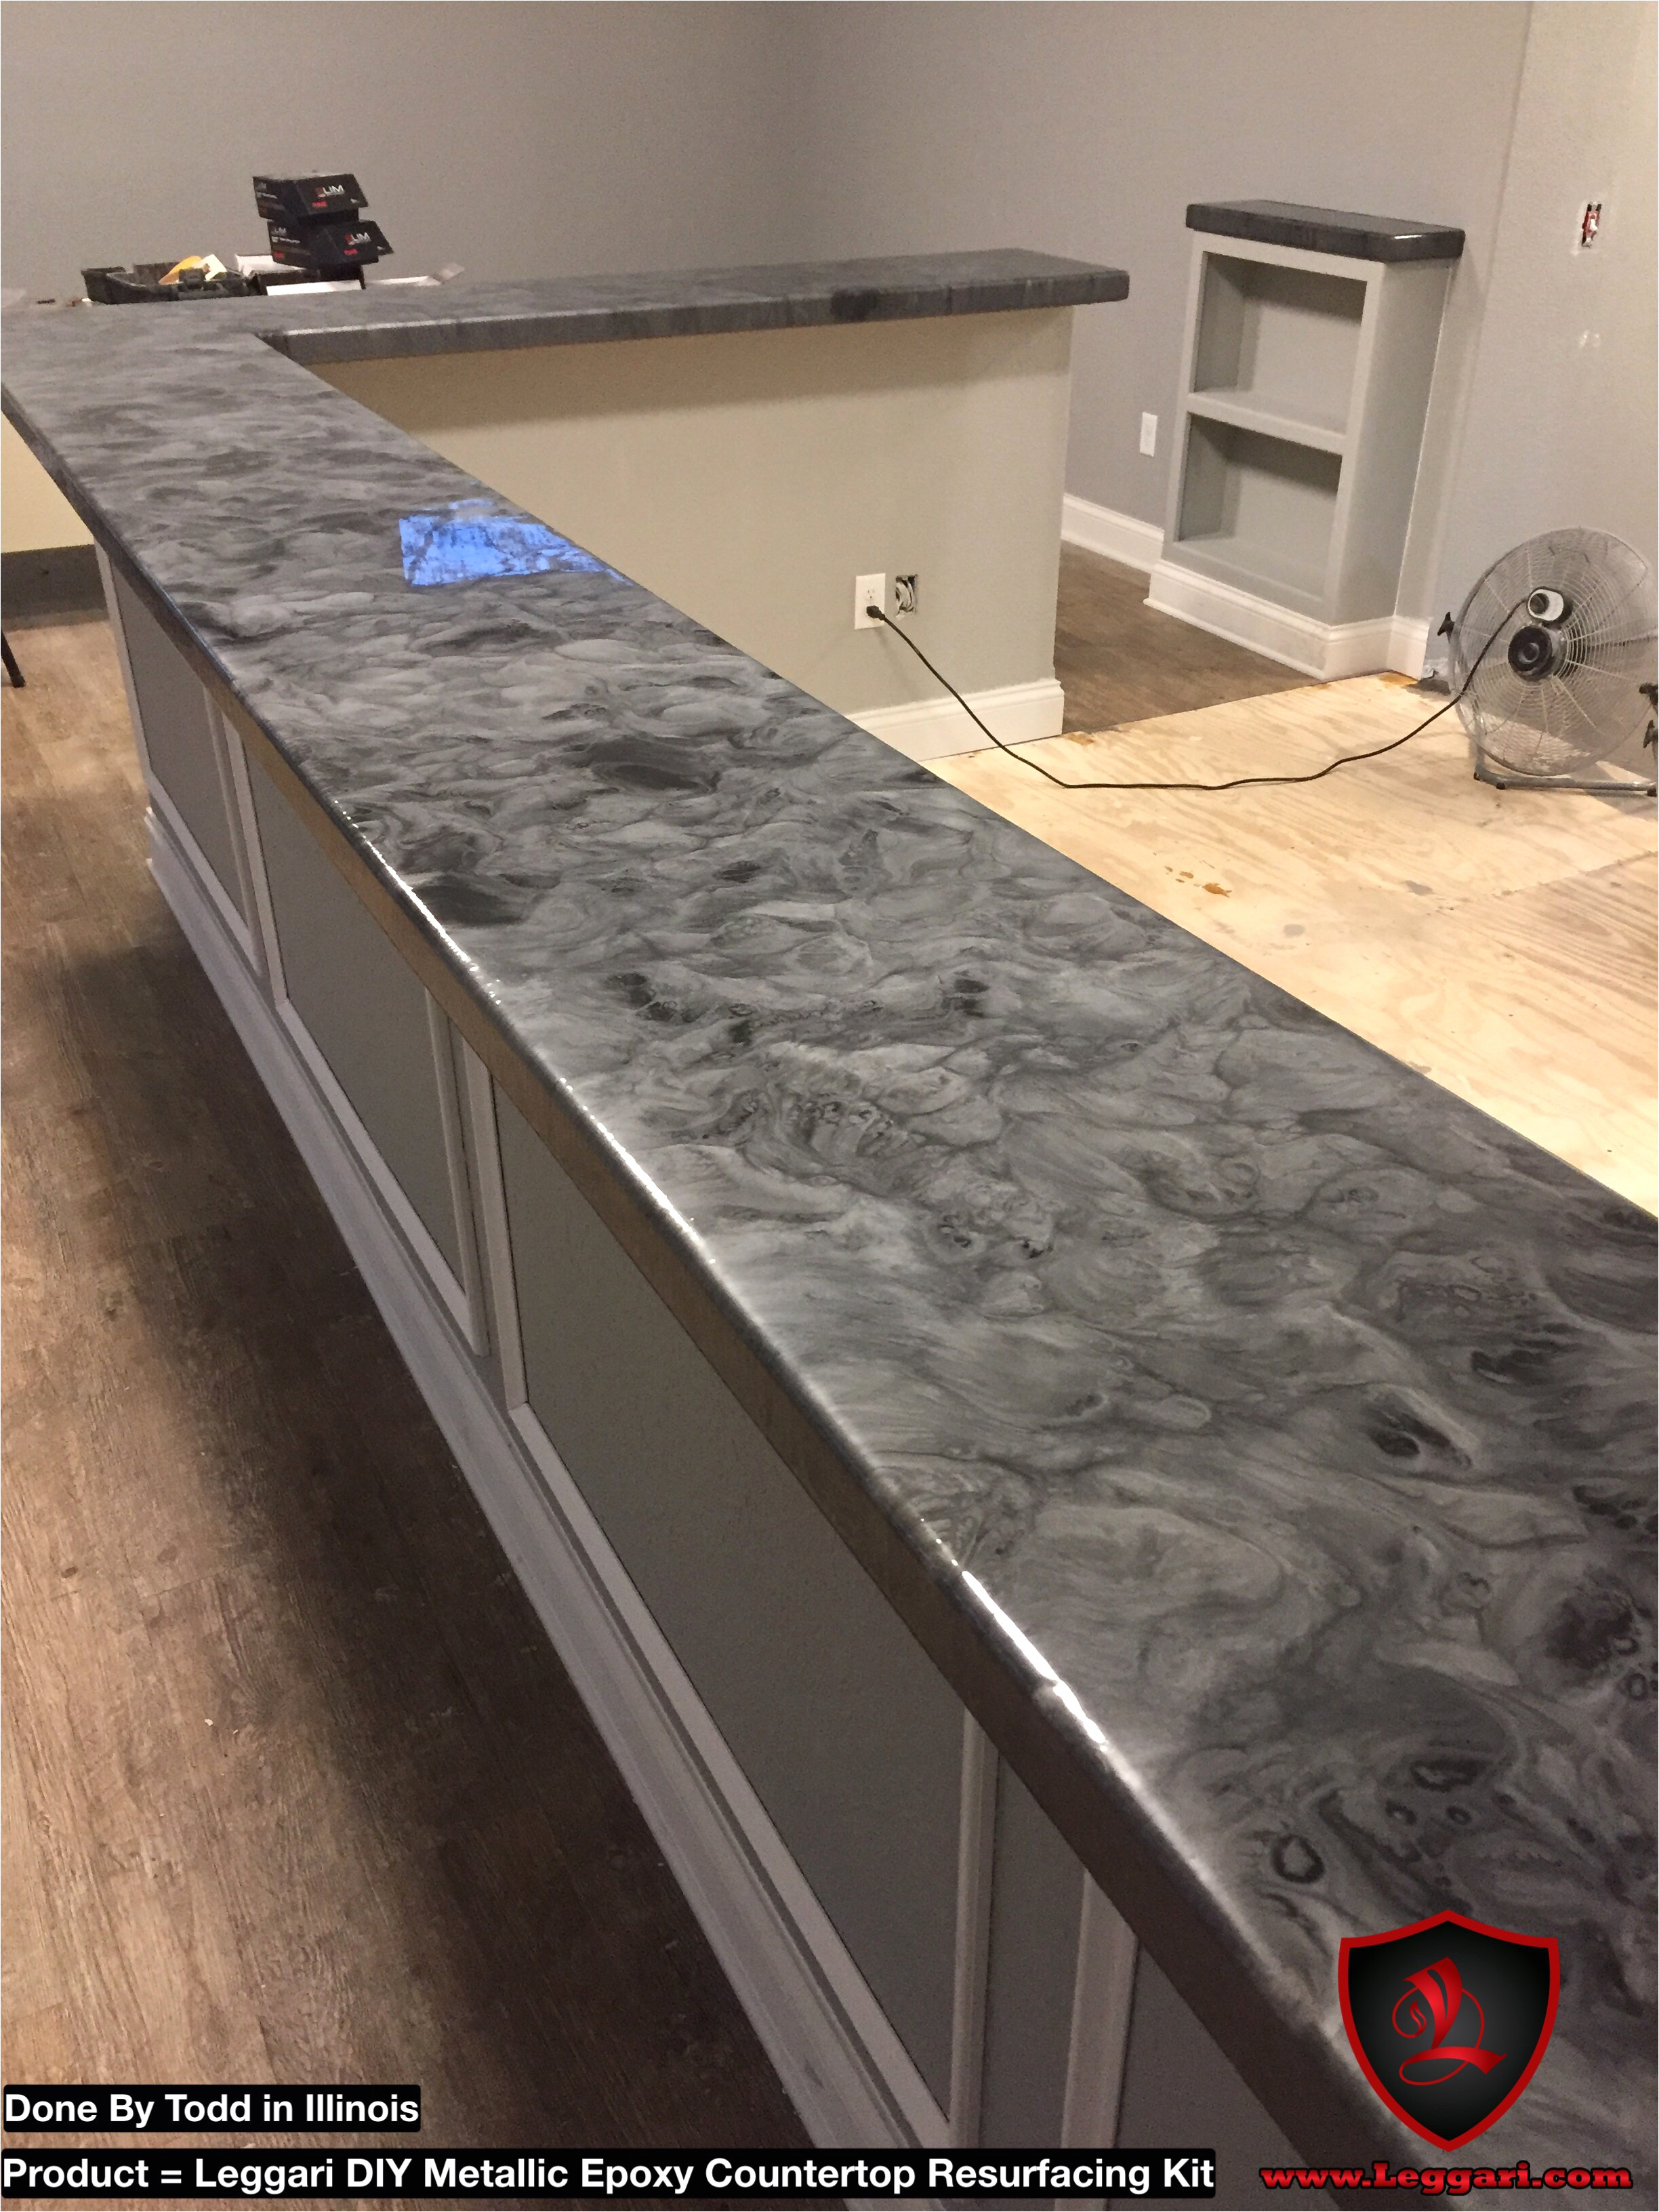 Leggari Epoxy Countertop Kits Uk Kitchen Counter Resurface Kit New Coat Your Old or Existing